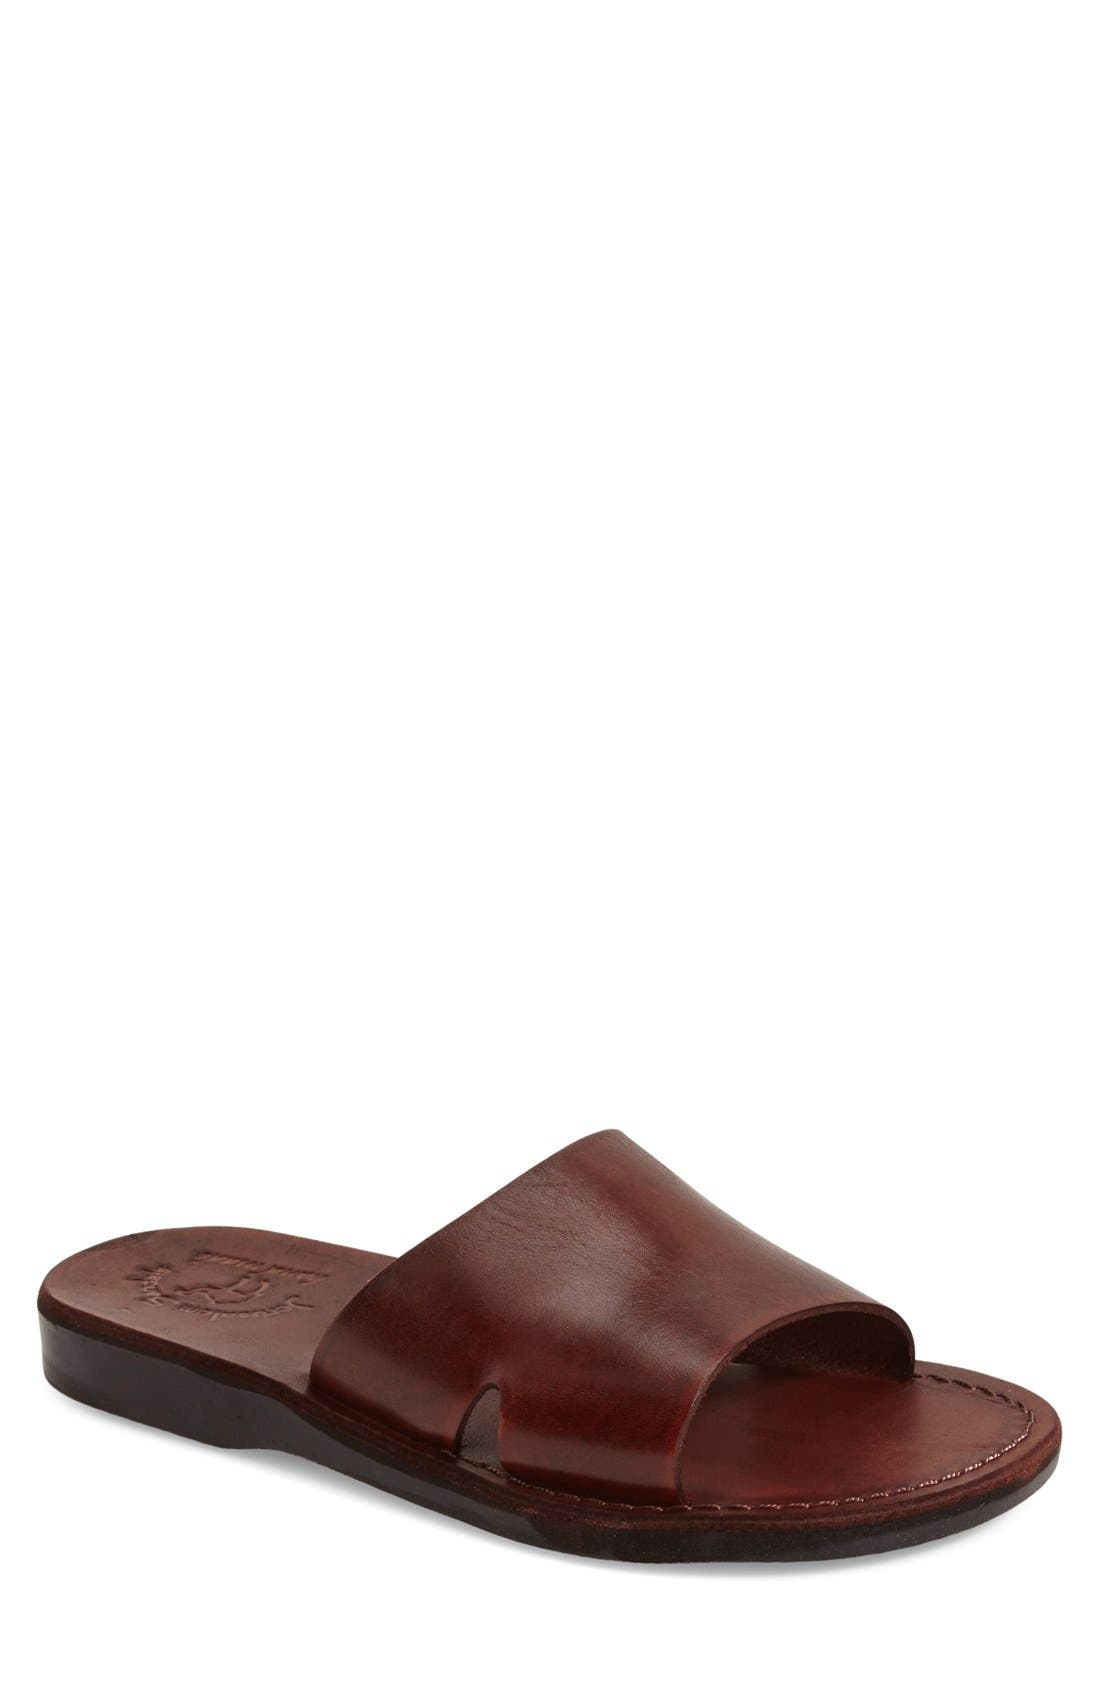 Alternate Image 1 Selected - Jerusalem Sandals 'Bashan' Sandal (Men)